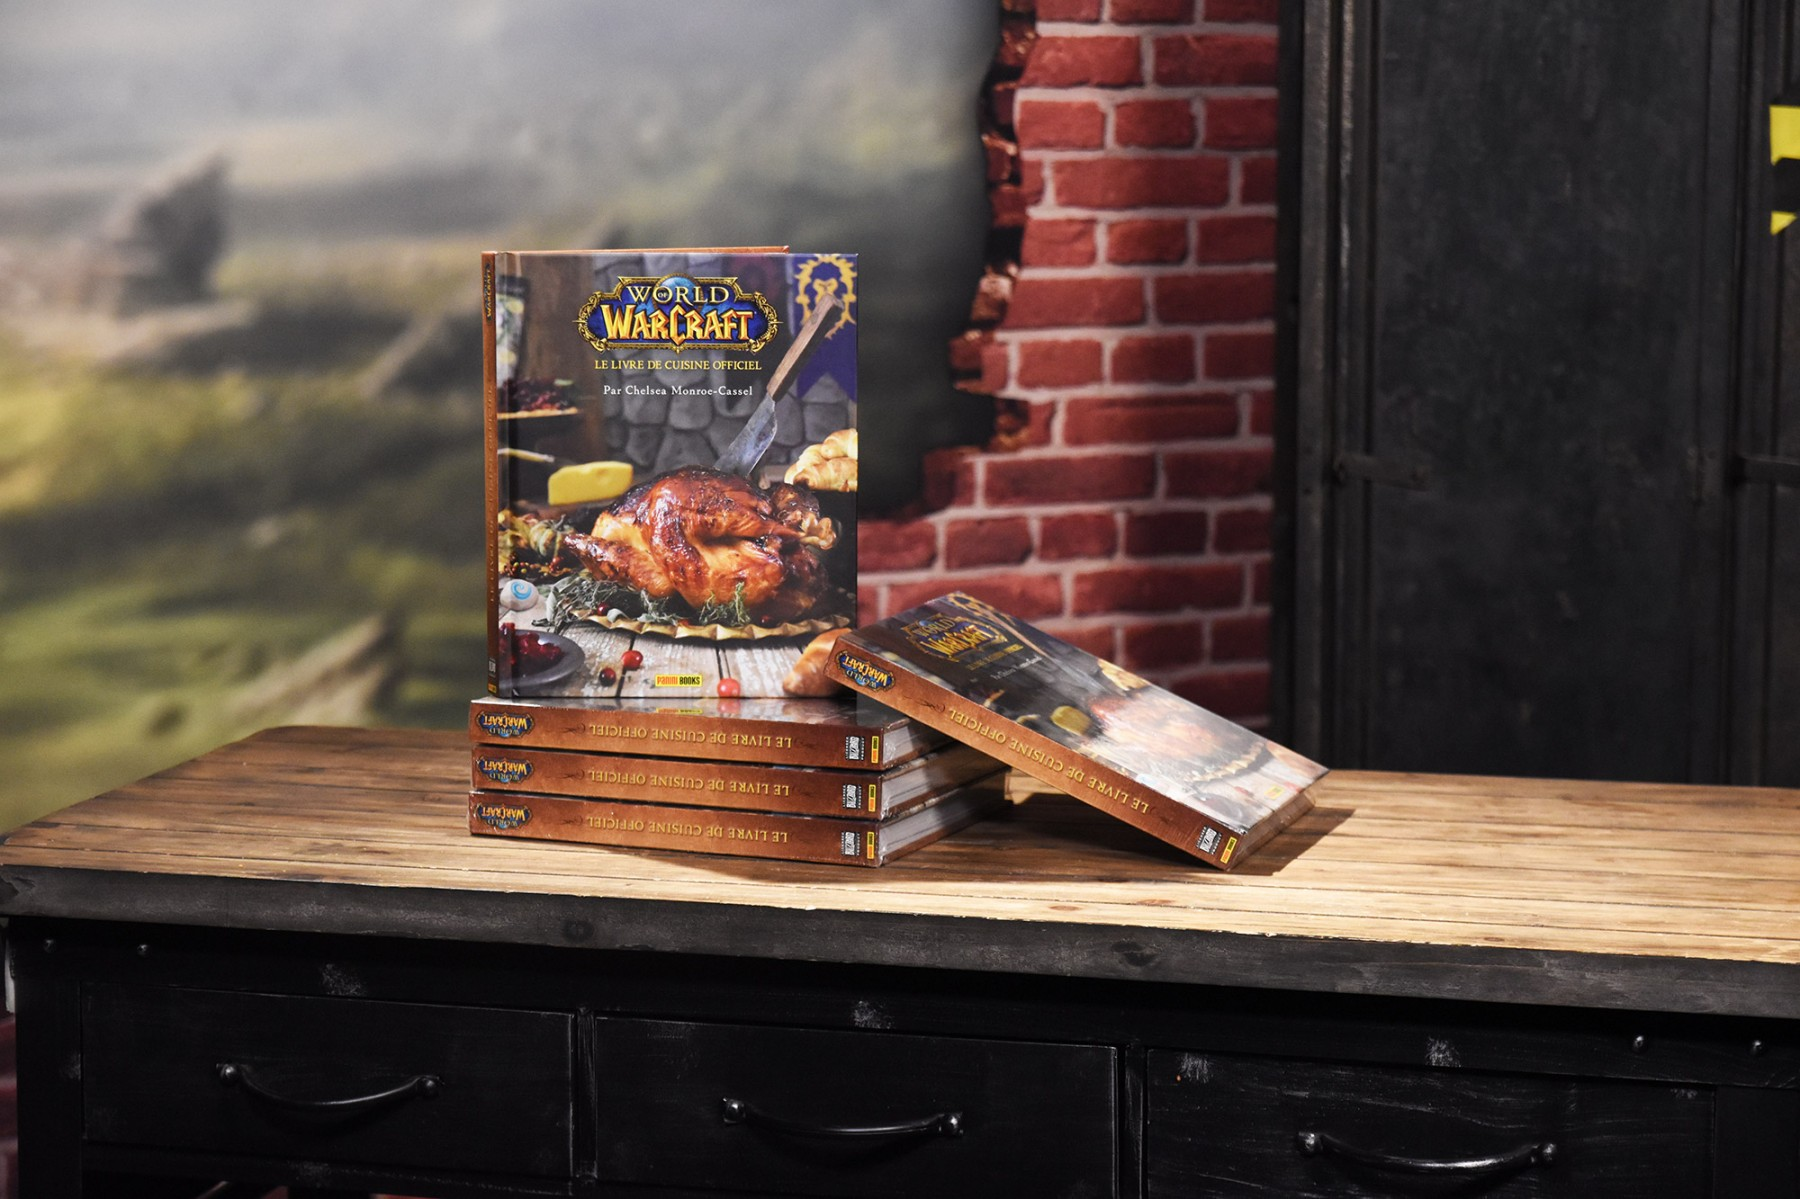 World of Warcraft, le livre de cuisine officiel